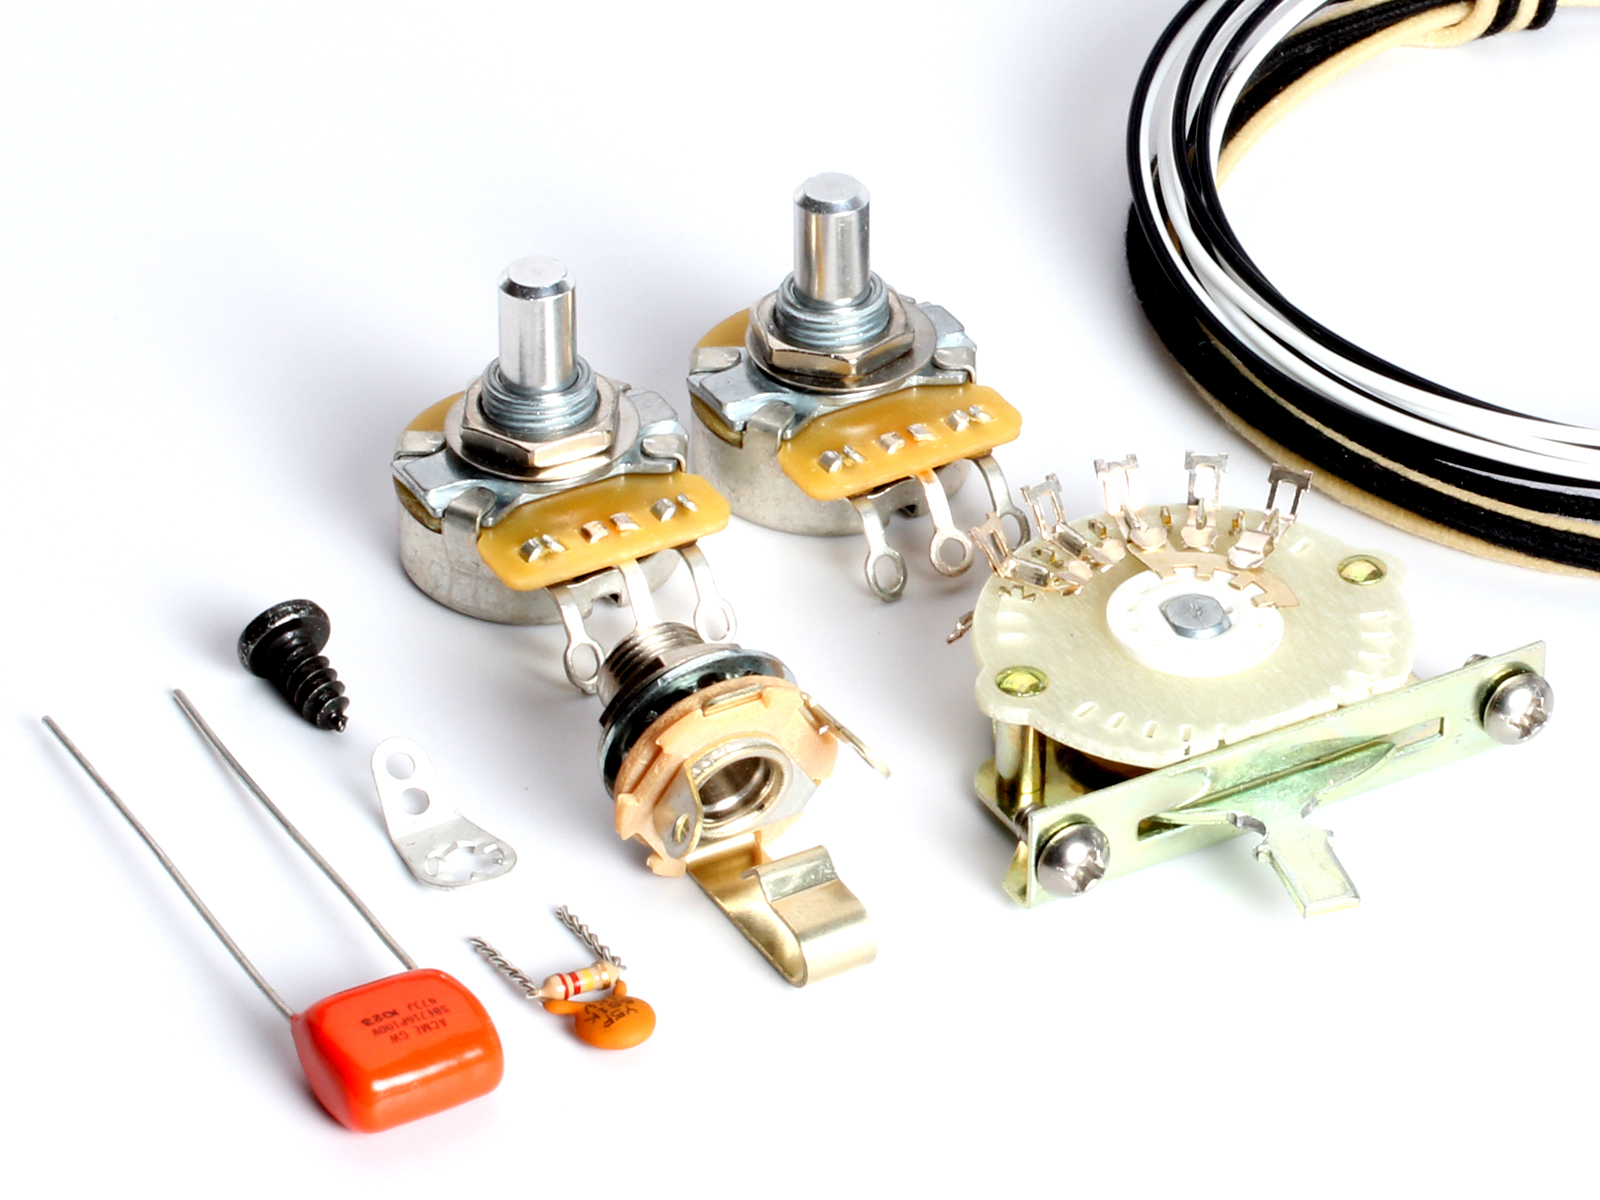 Stratocaster Wiring Kit - Solidfonts